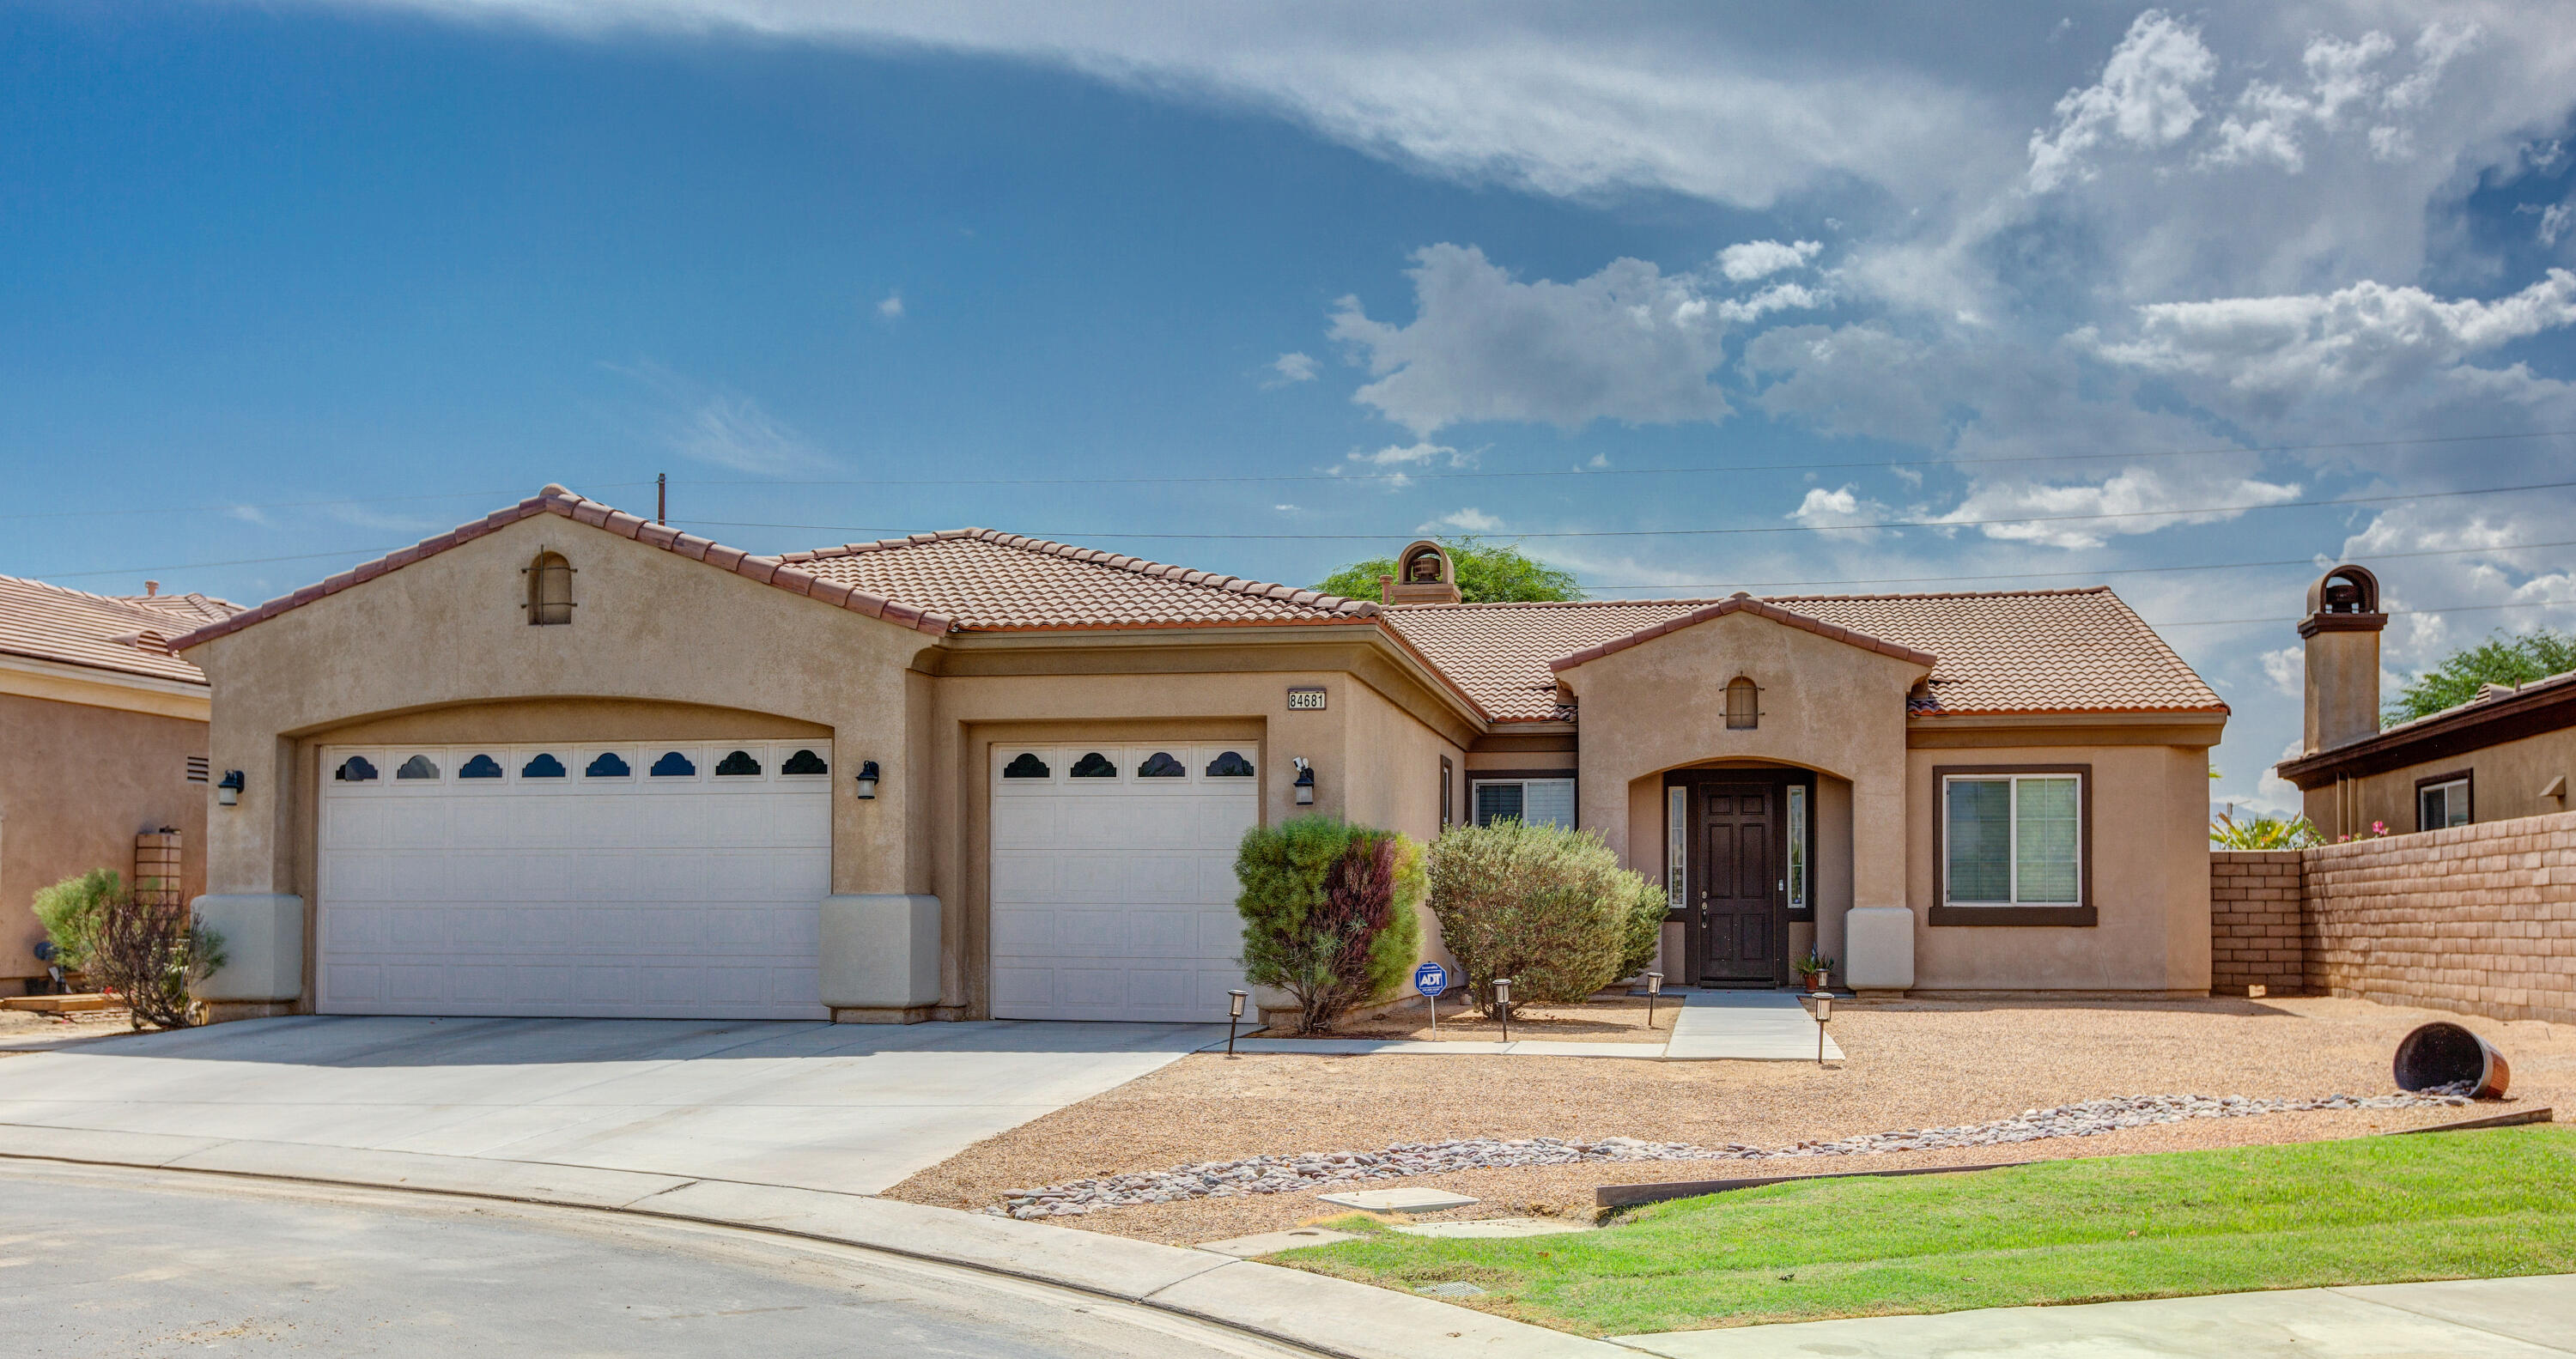 This home is a must see! This immaculate, spacious Lennar build features 4 bedroom, 3 bath, 3 car garage in the highly desirable community of Terra Lago, the kitchen includes slab granite counter tops, prep island, dining nook, lots of storage space. A huge great room with fireplace and lots of natural light. Terra Lago amenities include a clubhouse with resort-style community pool, spa, fitness center, game room, and playground, HOA dues also include cable/internet service. Terra Lago is a private guard gated community with low HOA dues, a man-made lake for electric boats, paddle boats, and catch & release fishing. This is the perfect property for any investor. Short Term Rentals are ALLOWED